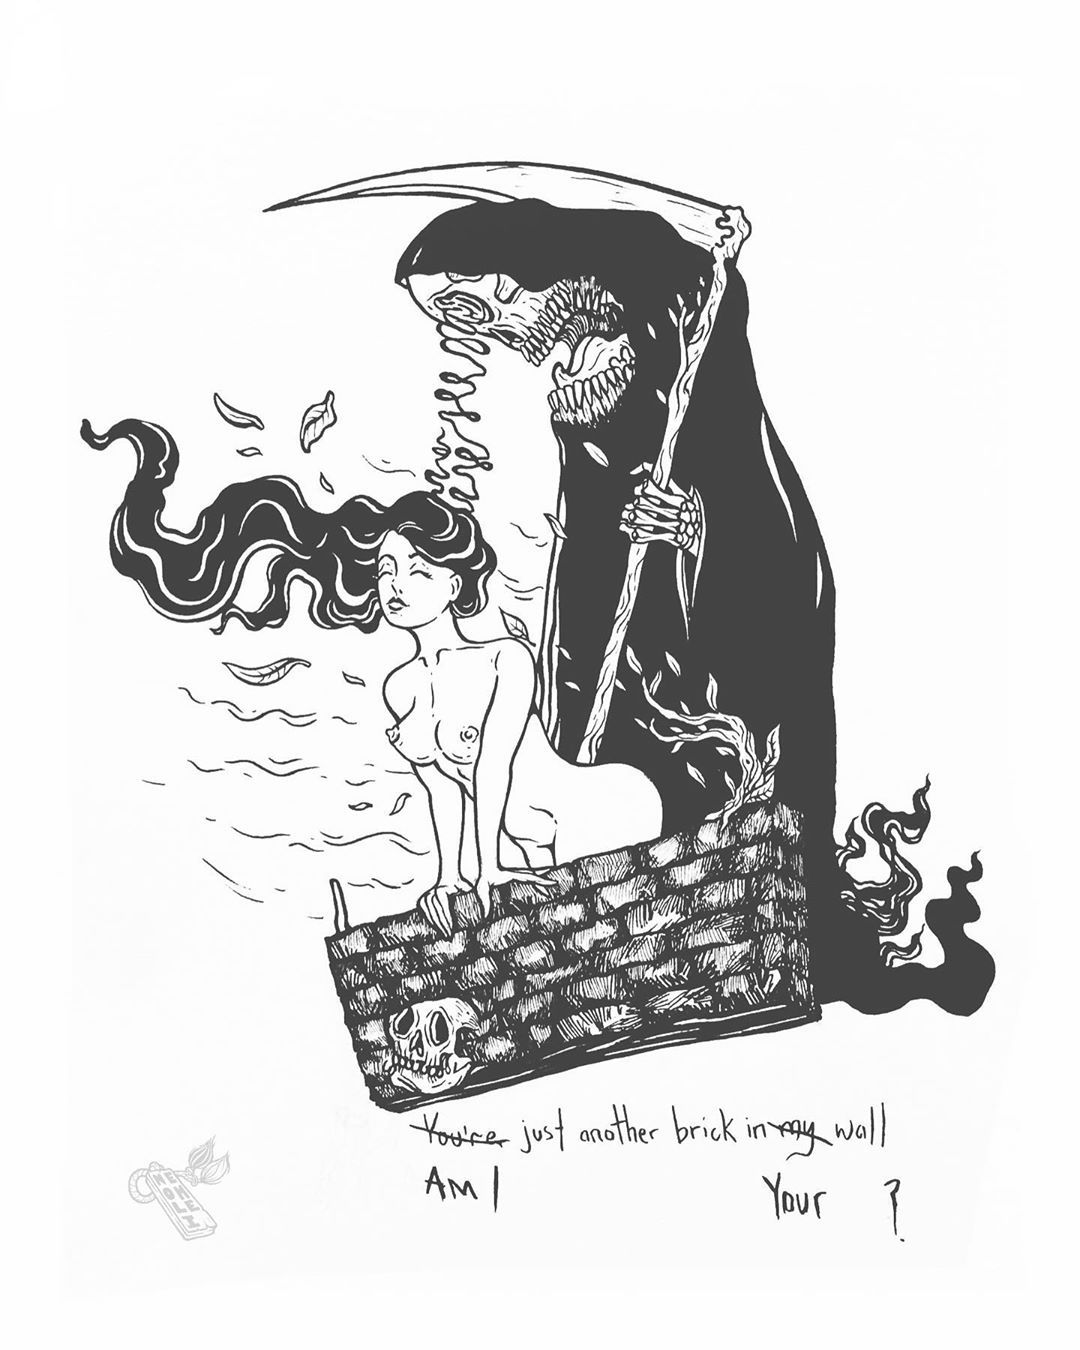 """""""Am I just another brick in your wall?"""" What do I mean to you reaper? . Pink Floyd reference . . . #lowbrow #designart #blackwork #darkillustration #nycartist #nyctattooartist #illustration #darkart #darkartist #illustrator #illustratorsoninstagram #sketches #linework #lineart #ink #inkdrawing #inkart #inkwork #tattooideas #tattoodesign #mysketchbook #drawings #draweveryday #scribbleart #scribble"""